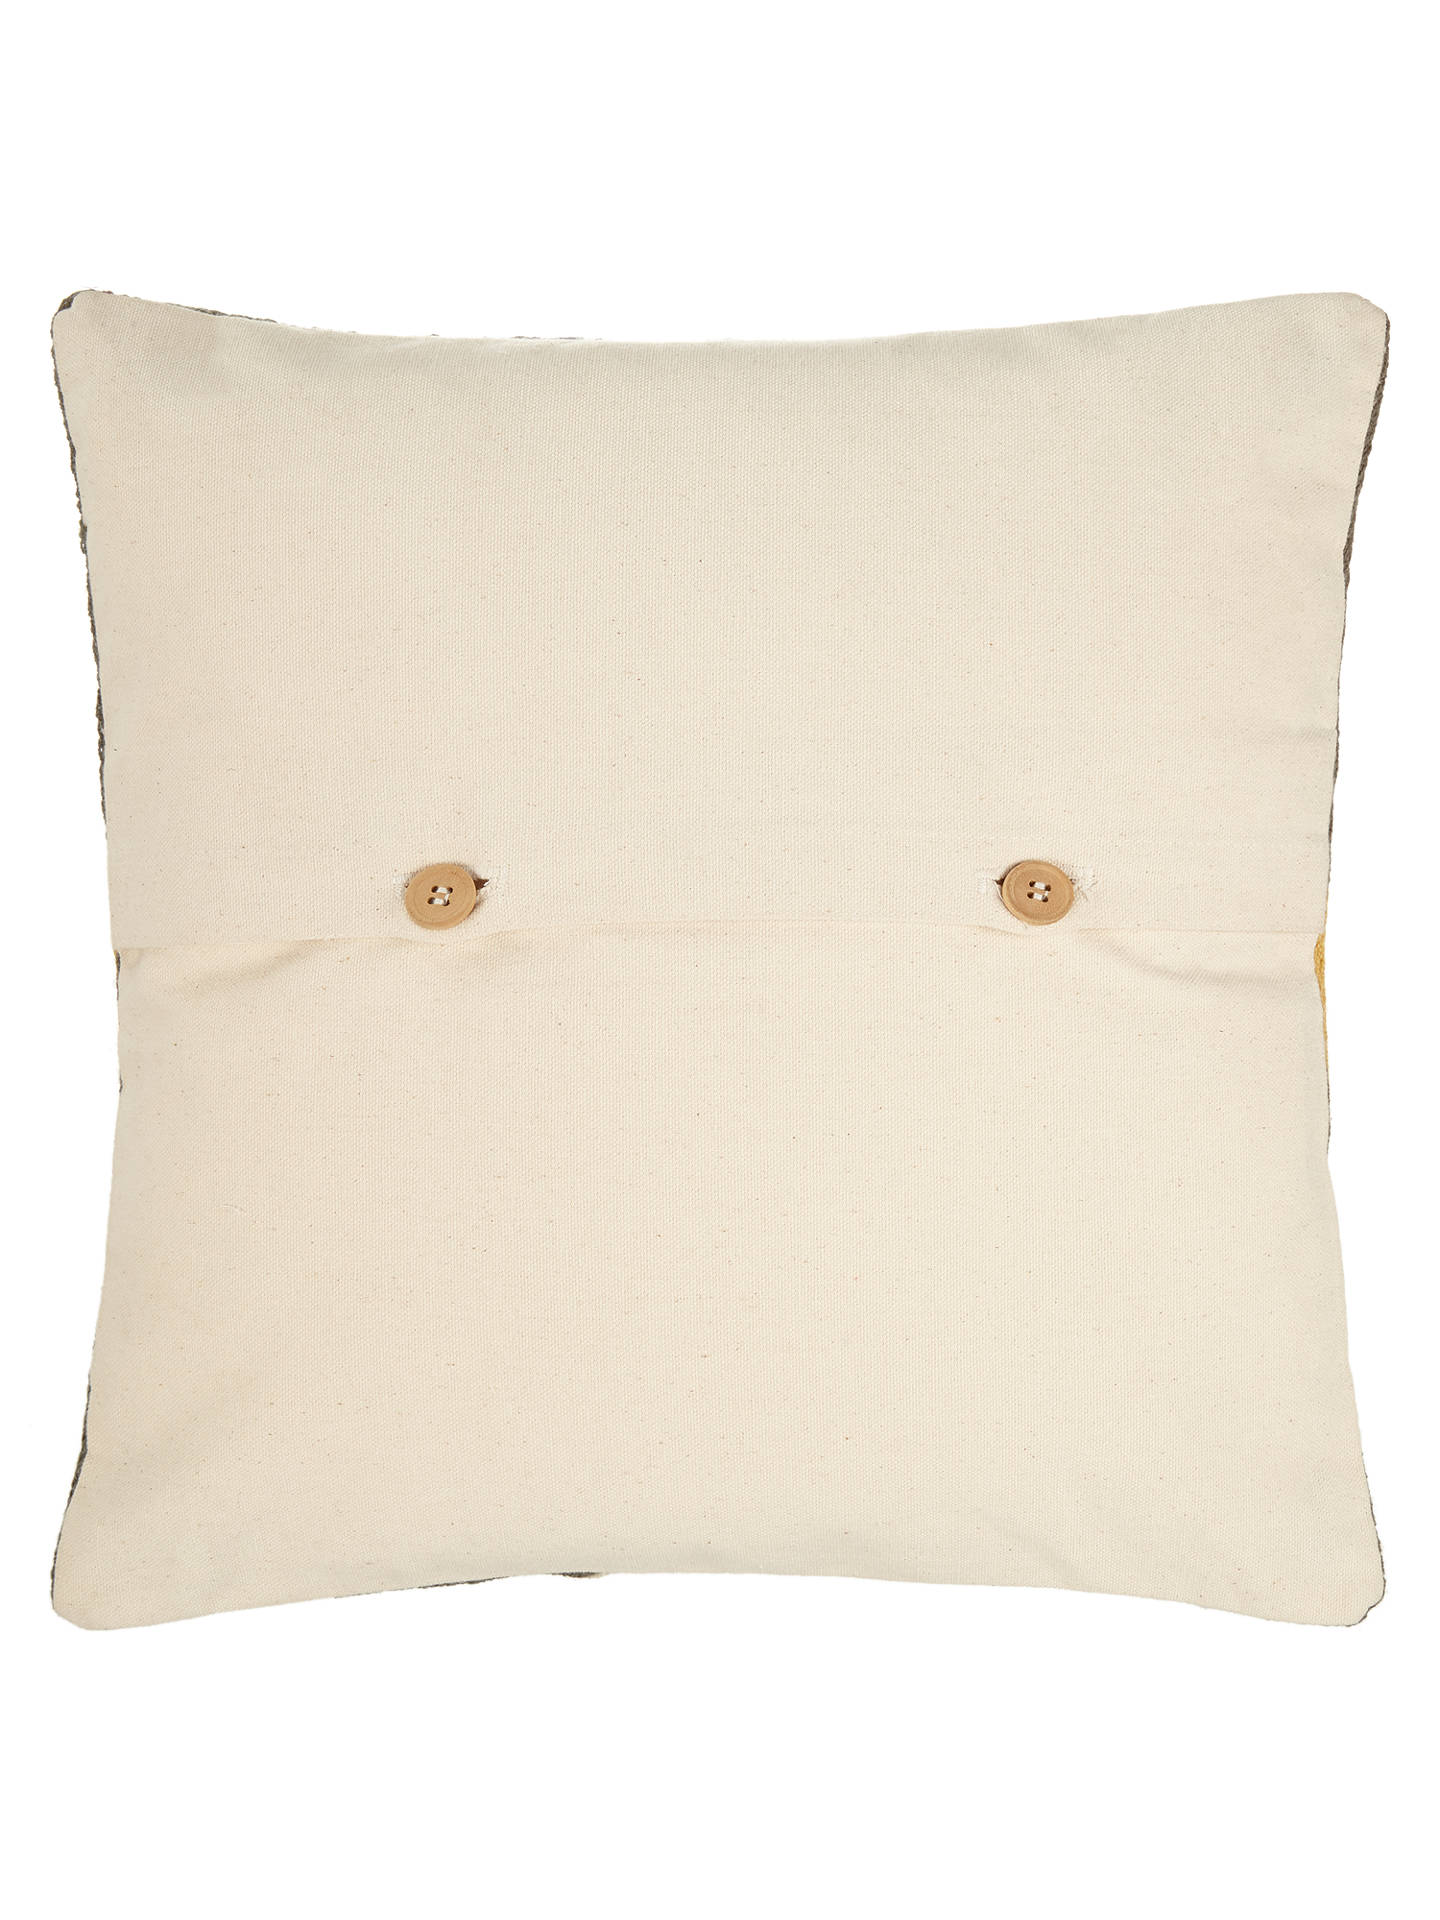 BuyJohn Lewis Oculus Cushion, Citrine / Grey Online at johnlewis.com